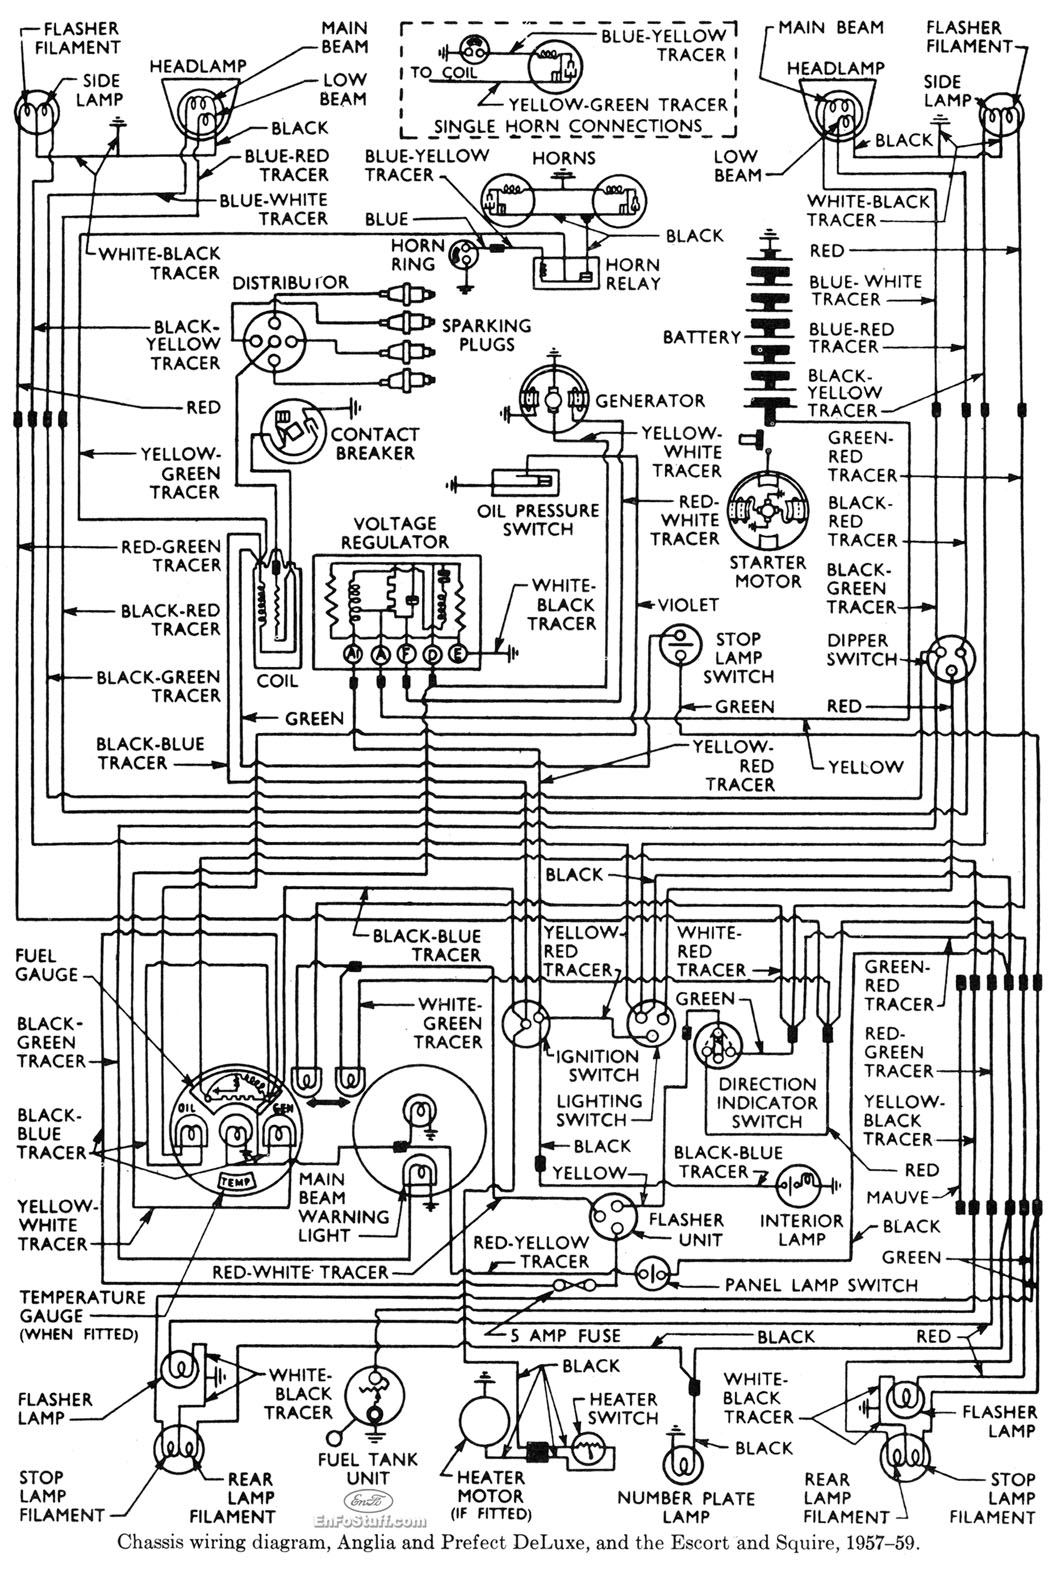 Fine True Twt 27f Wiring Diagram Picture Collection - Wiring Diagram ...